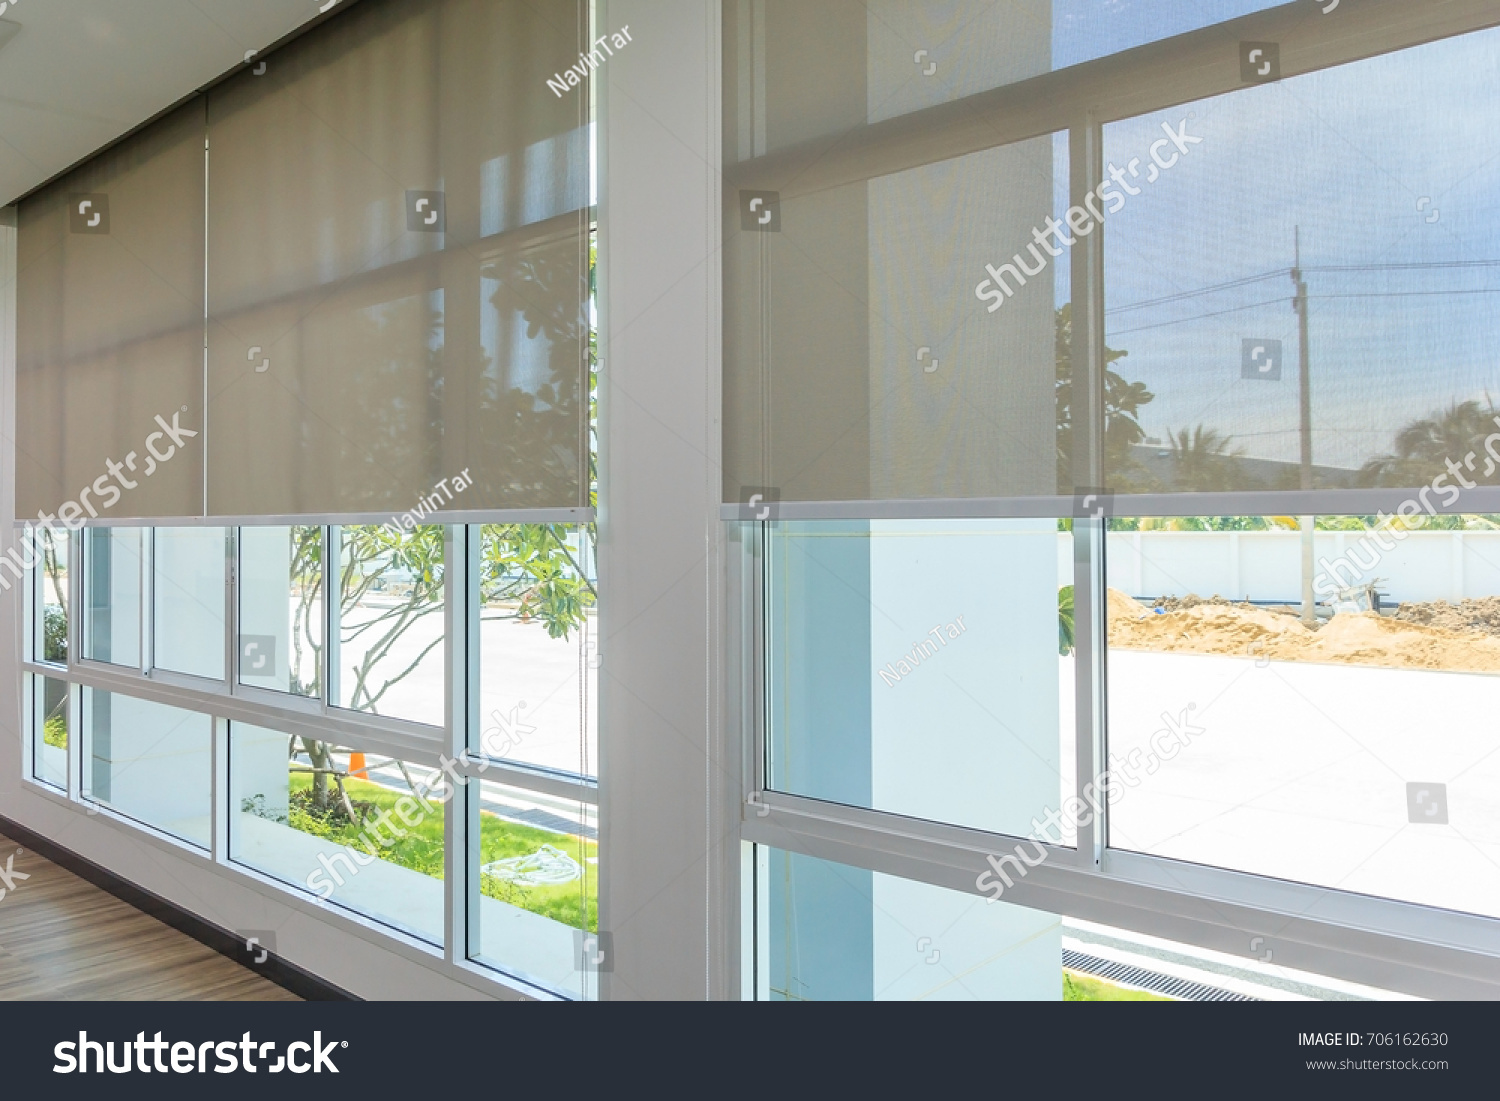 Roll Blinds on the windows, the sun does not penetrate the house. Window in the Interior Roller Blinds. Beautiful Blinds on the Window, the Sun and Heat Protection, the Perfect Windows Interior Decor #706162630